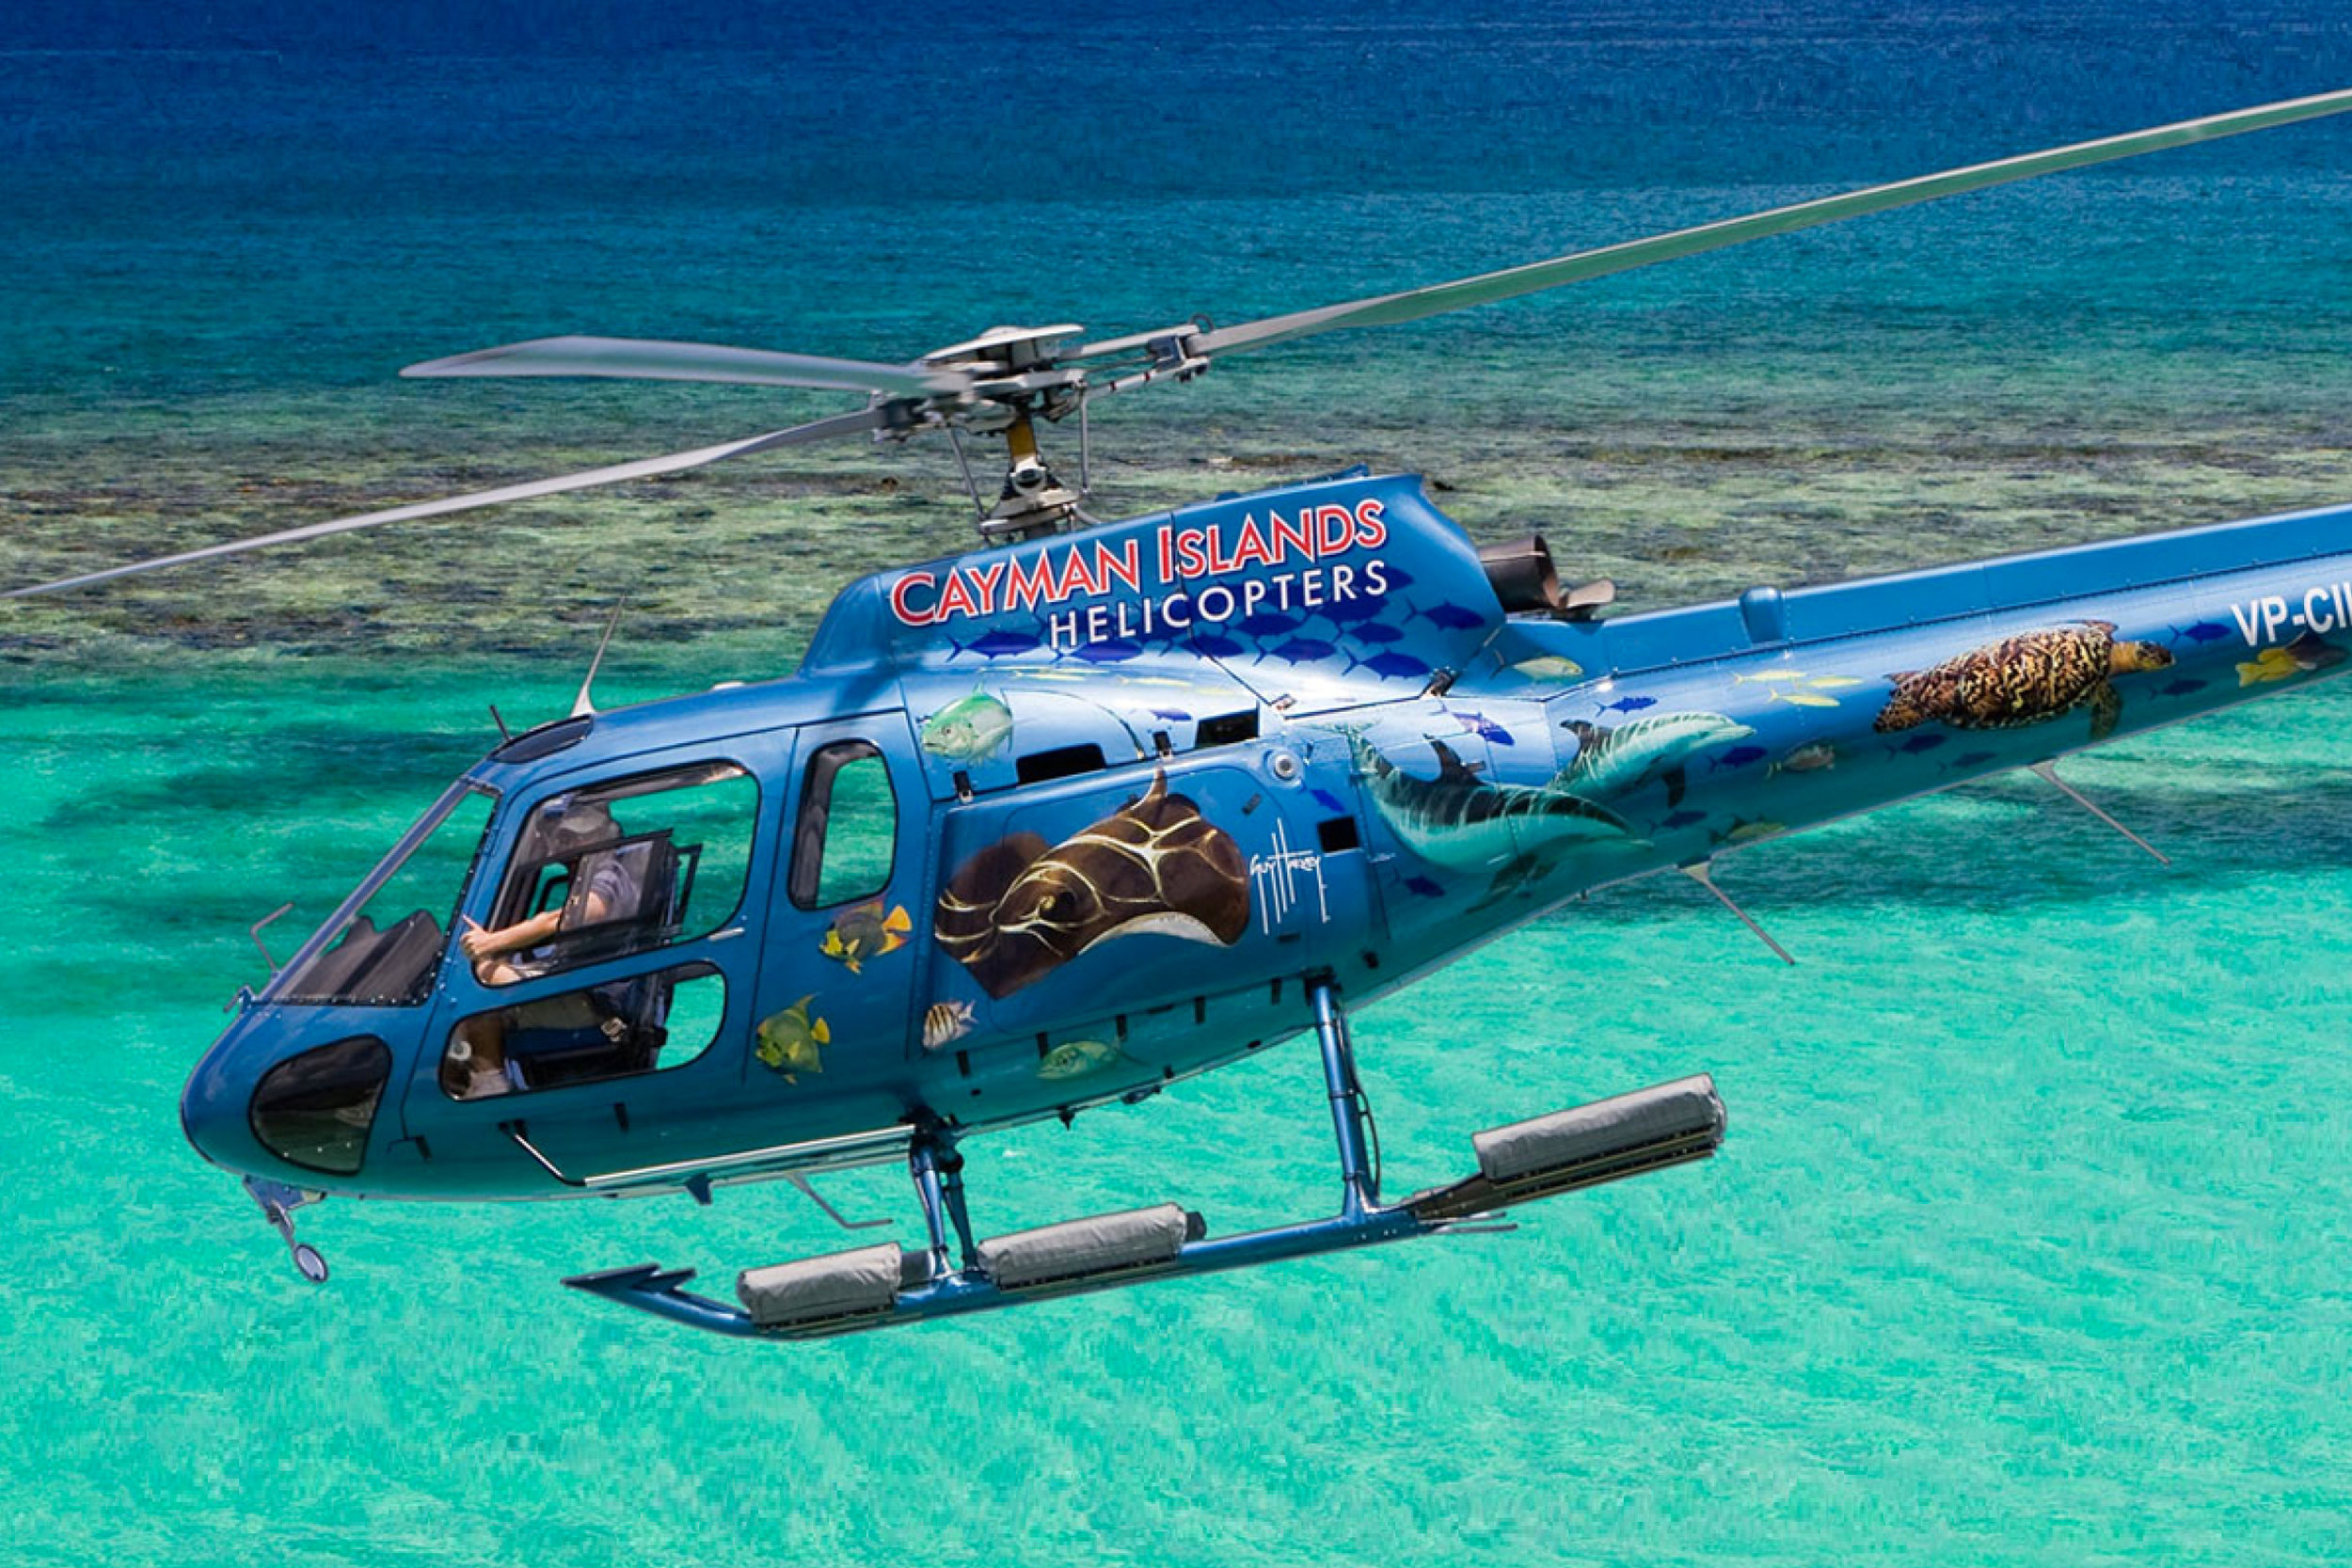 CI_HELICOPTERS-7.jpg